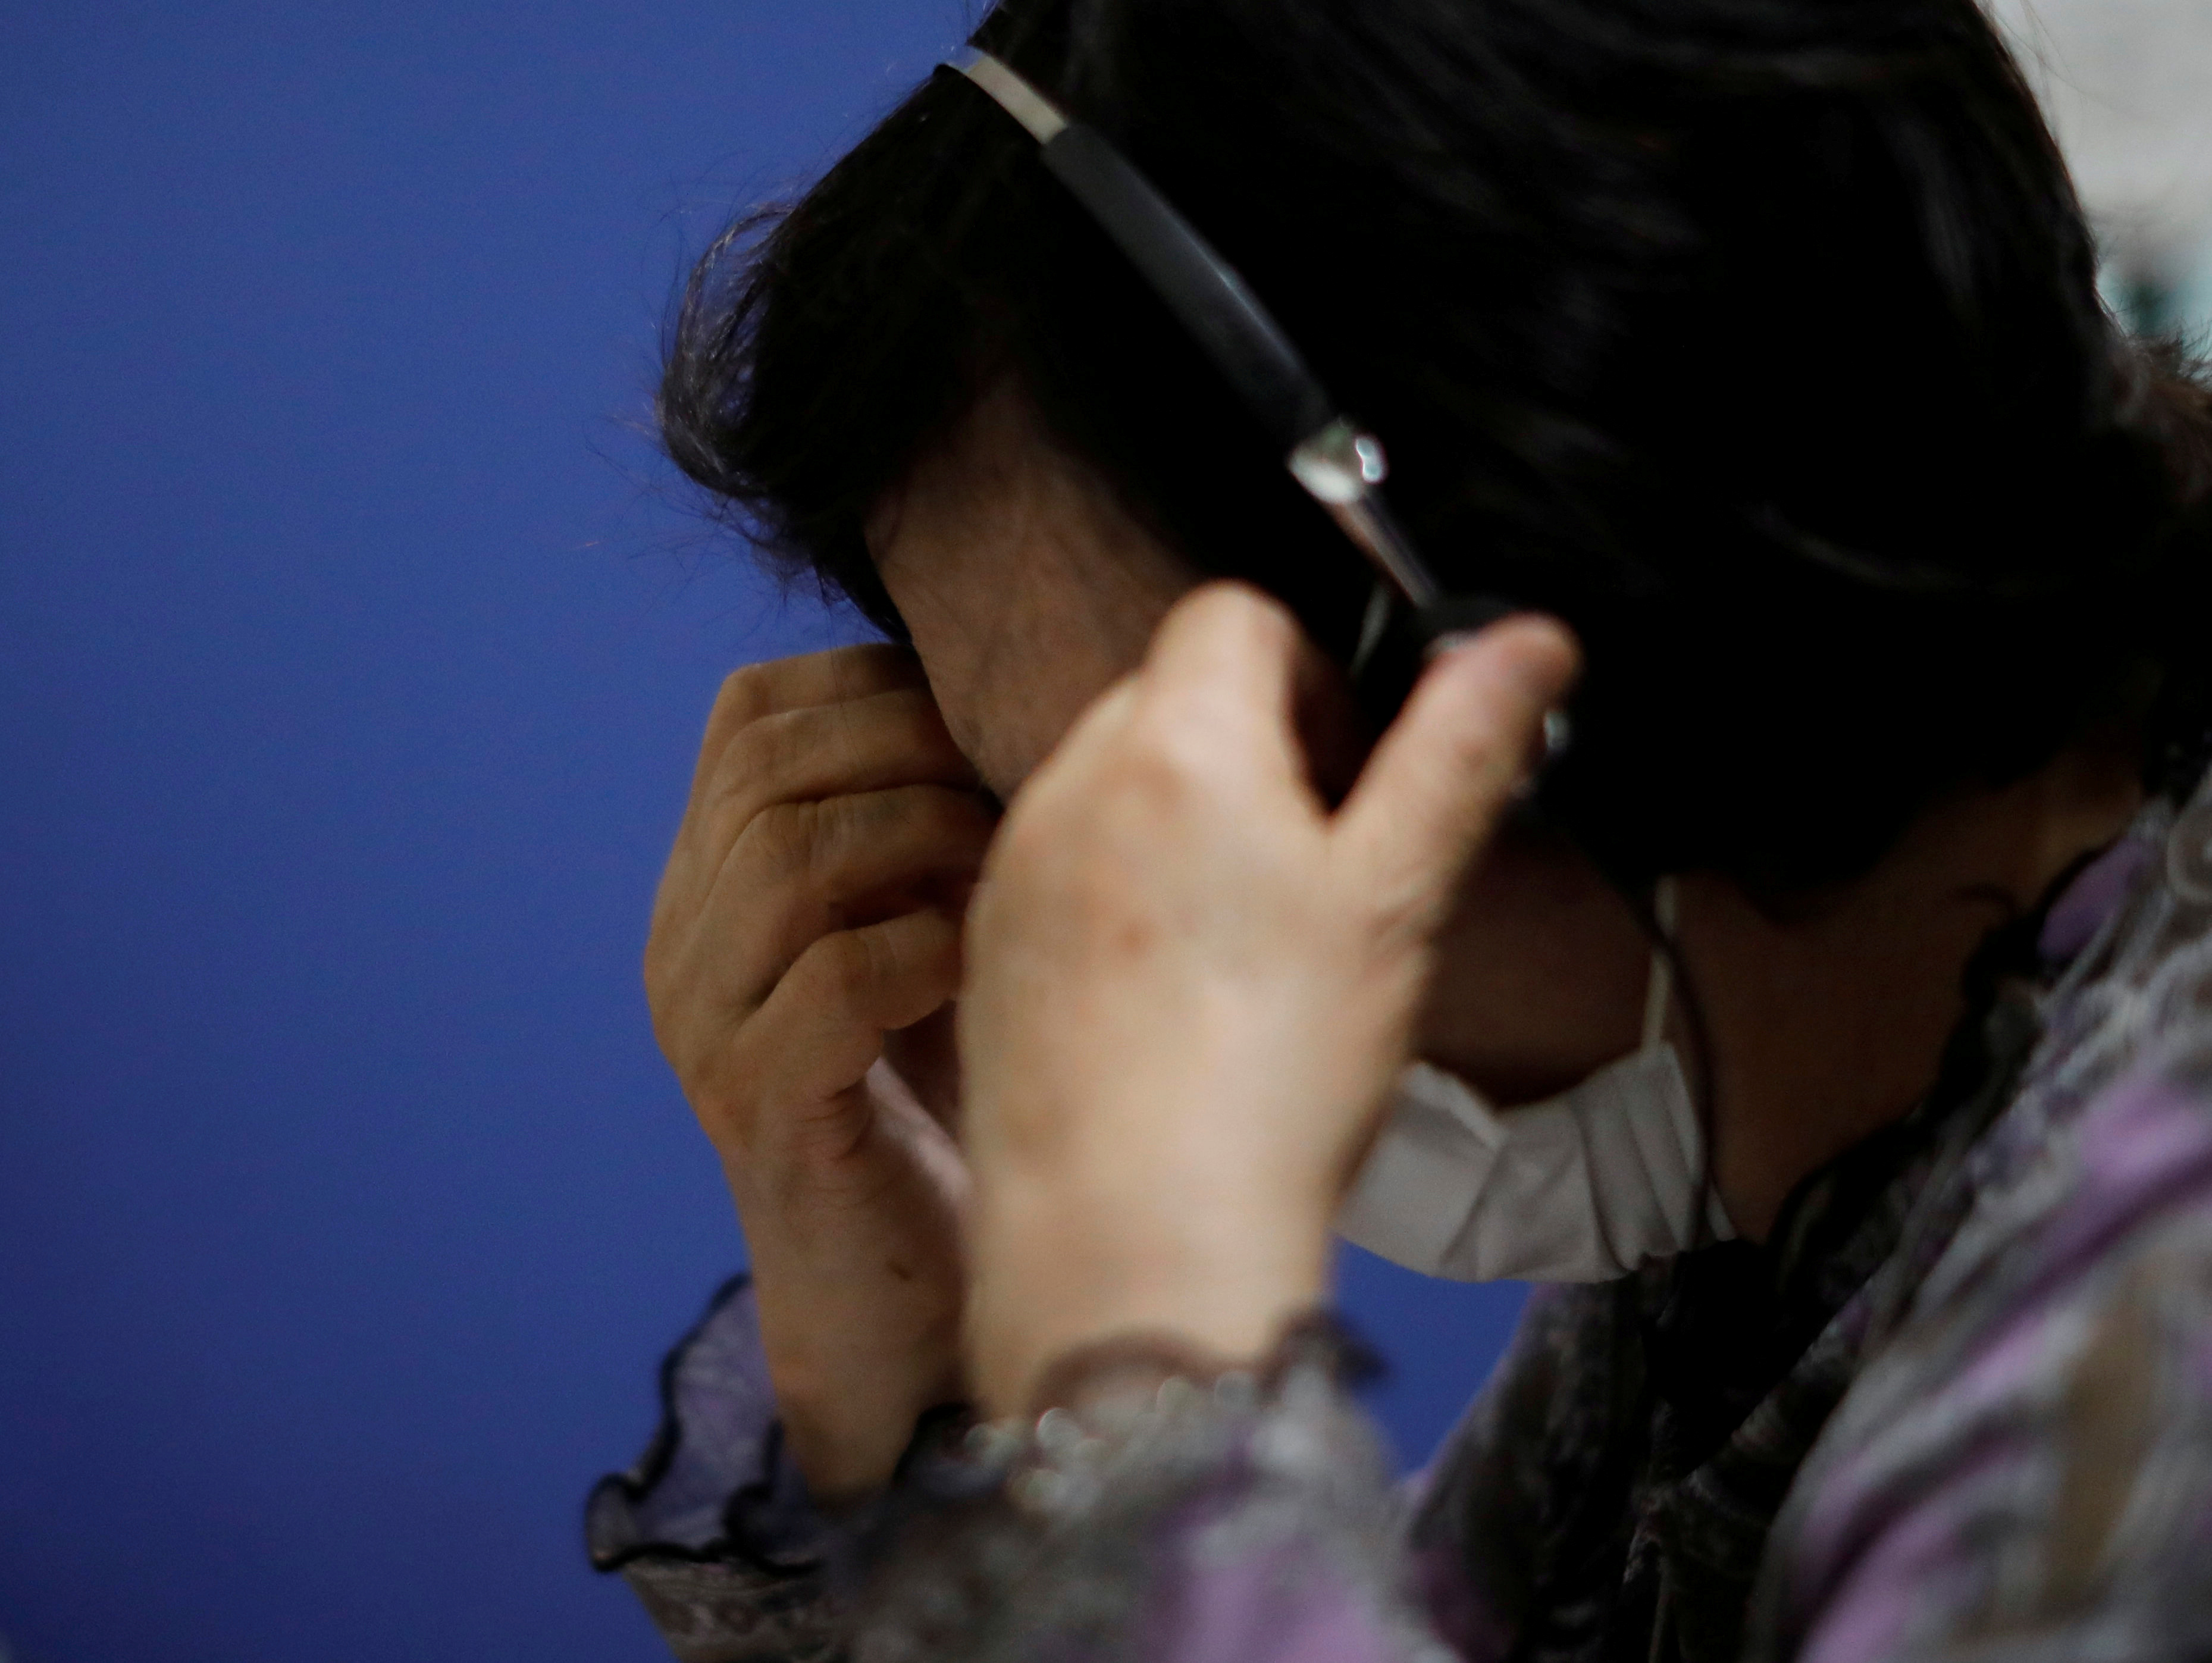 A volunteer responds an incoming call at the Tokyo Befrienders call center, a Tokyo's suicide hotline center, during the spread of the coronavirus disease (COVID-19), in Tokyo, Japan May 26, 2020. REUTERS/Issei Kato